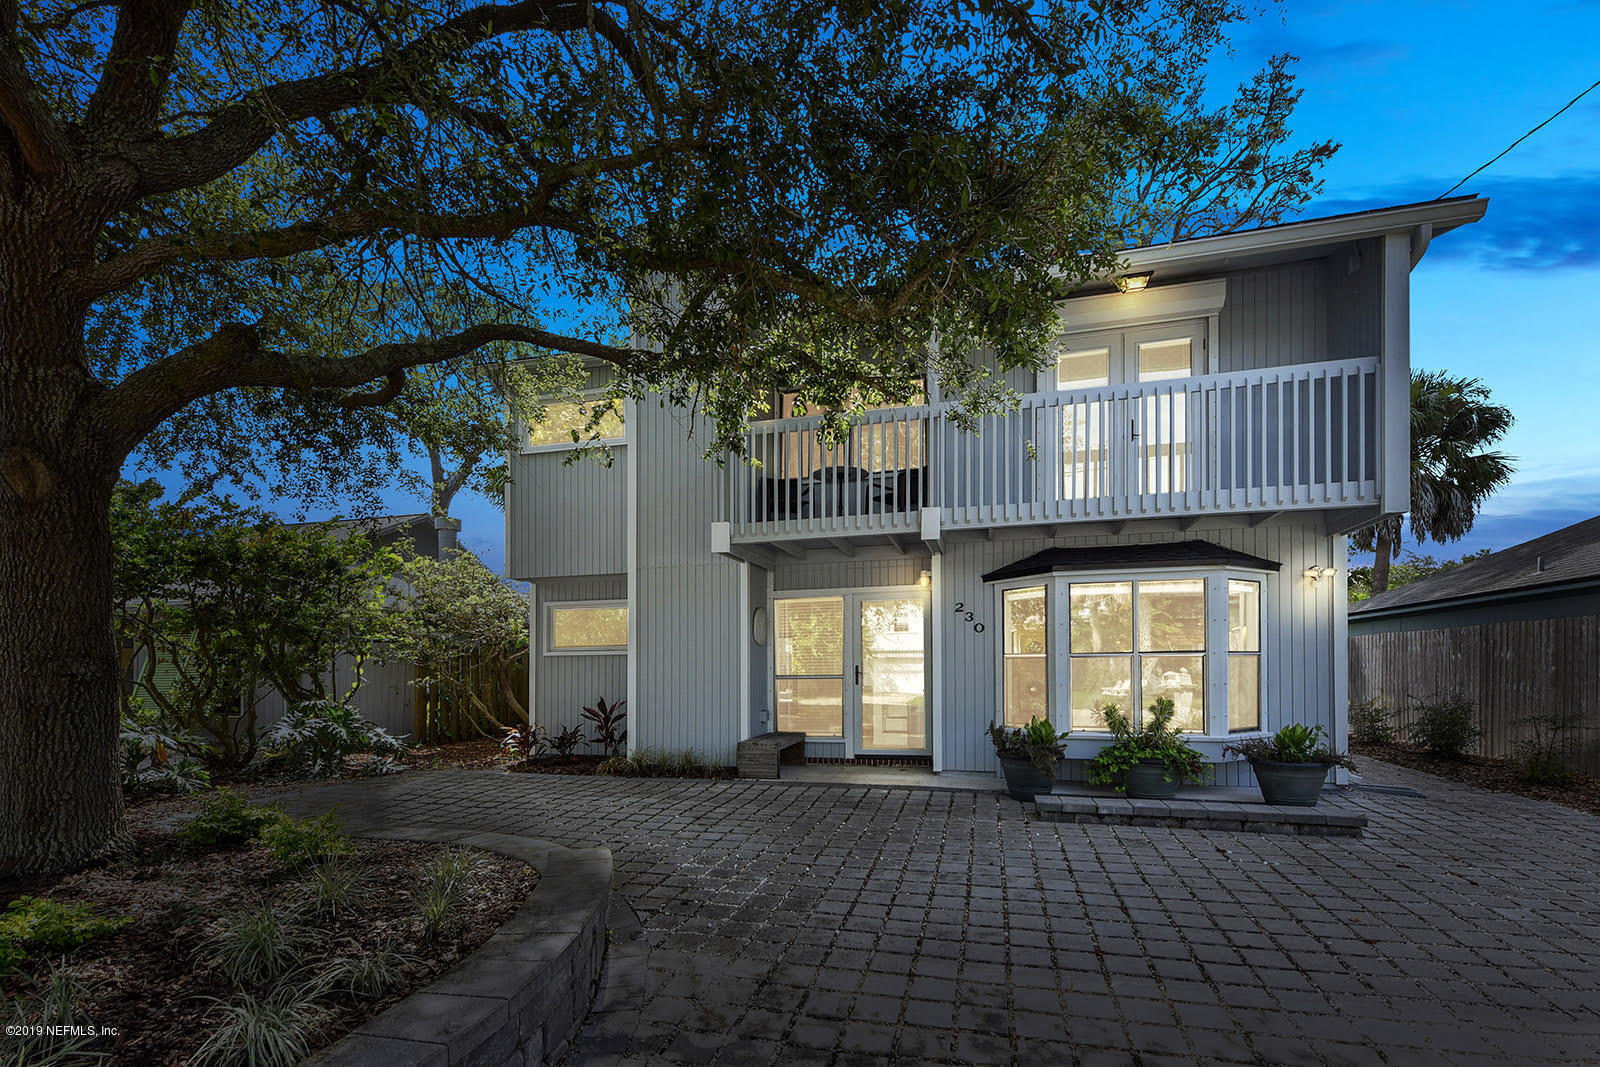 The Jacksonville Beaches Homes For Sale: Open Home Report